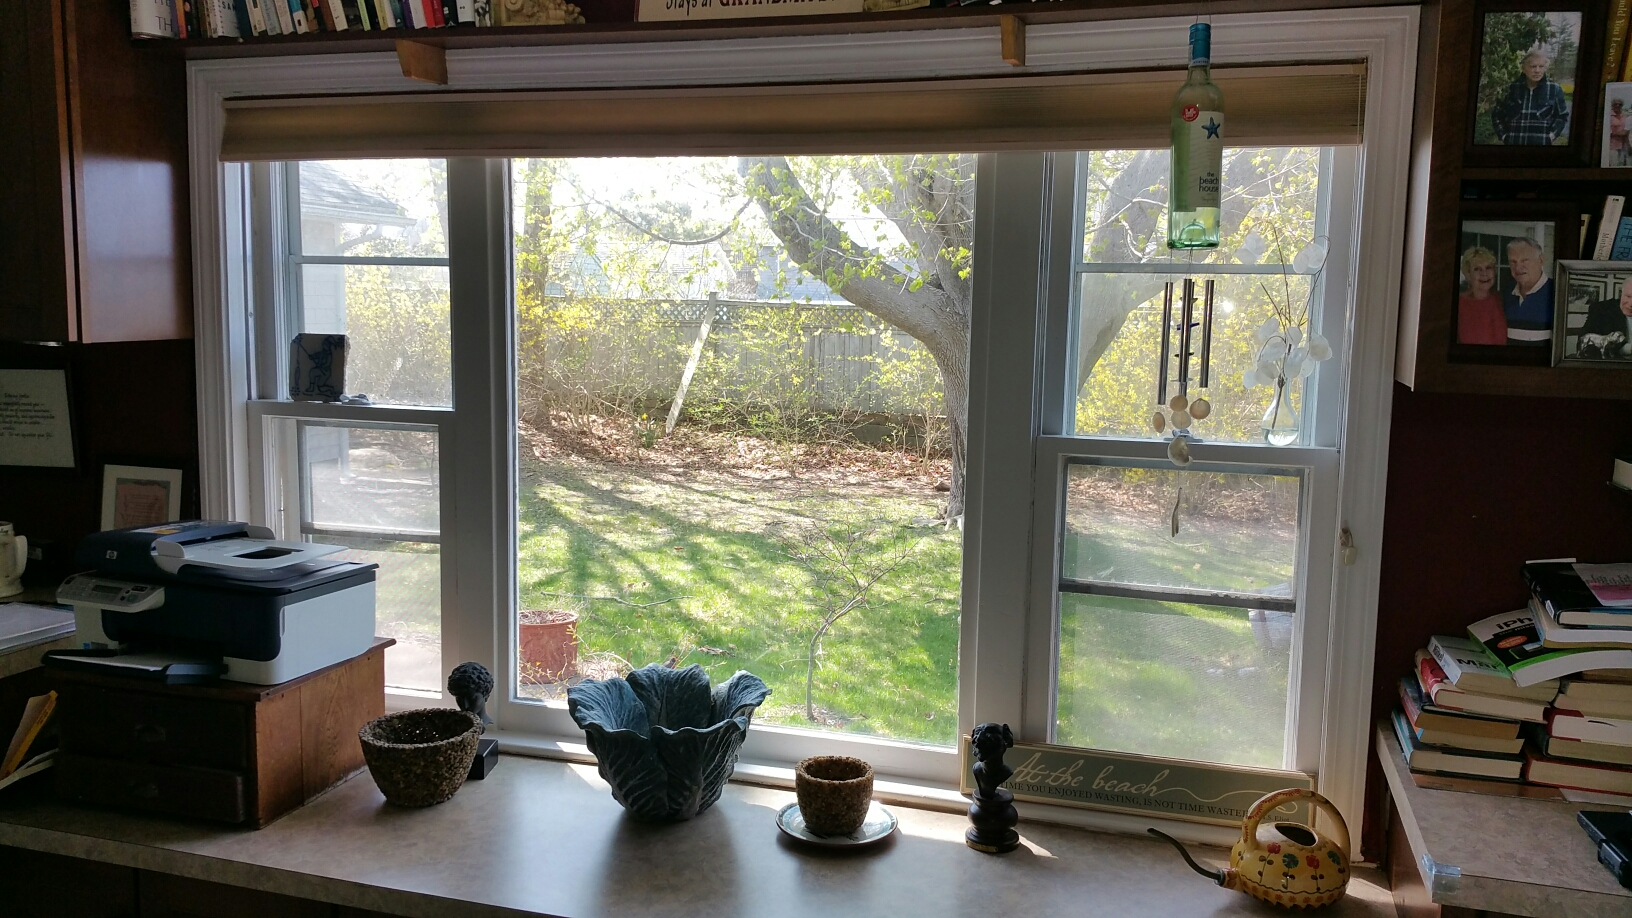 North Kingstown, RI - Turning this old fashioned window into a bright new beautiful triple gliding window that will let in so much more light. Renewal by Andersen can transform all of your dated looking for Windows into maintenance free gorgeous up-to-date products!